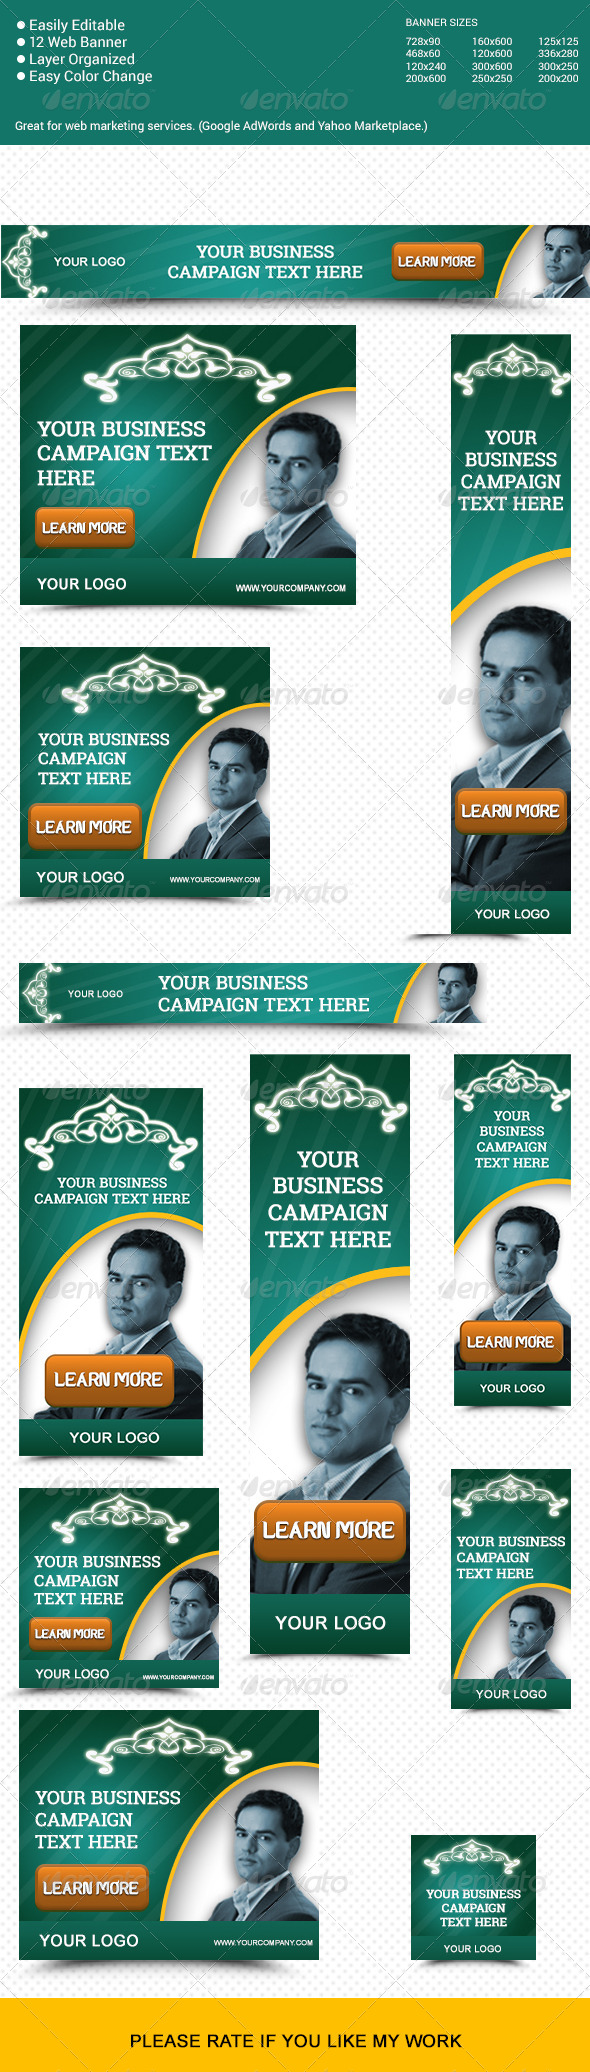 Corporate Decorative Marketing Web Banners - Banners & Ads Web Elements